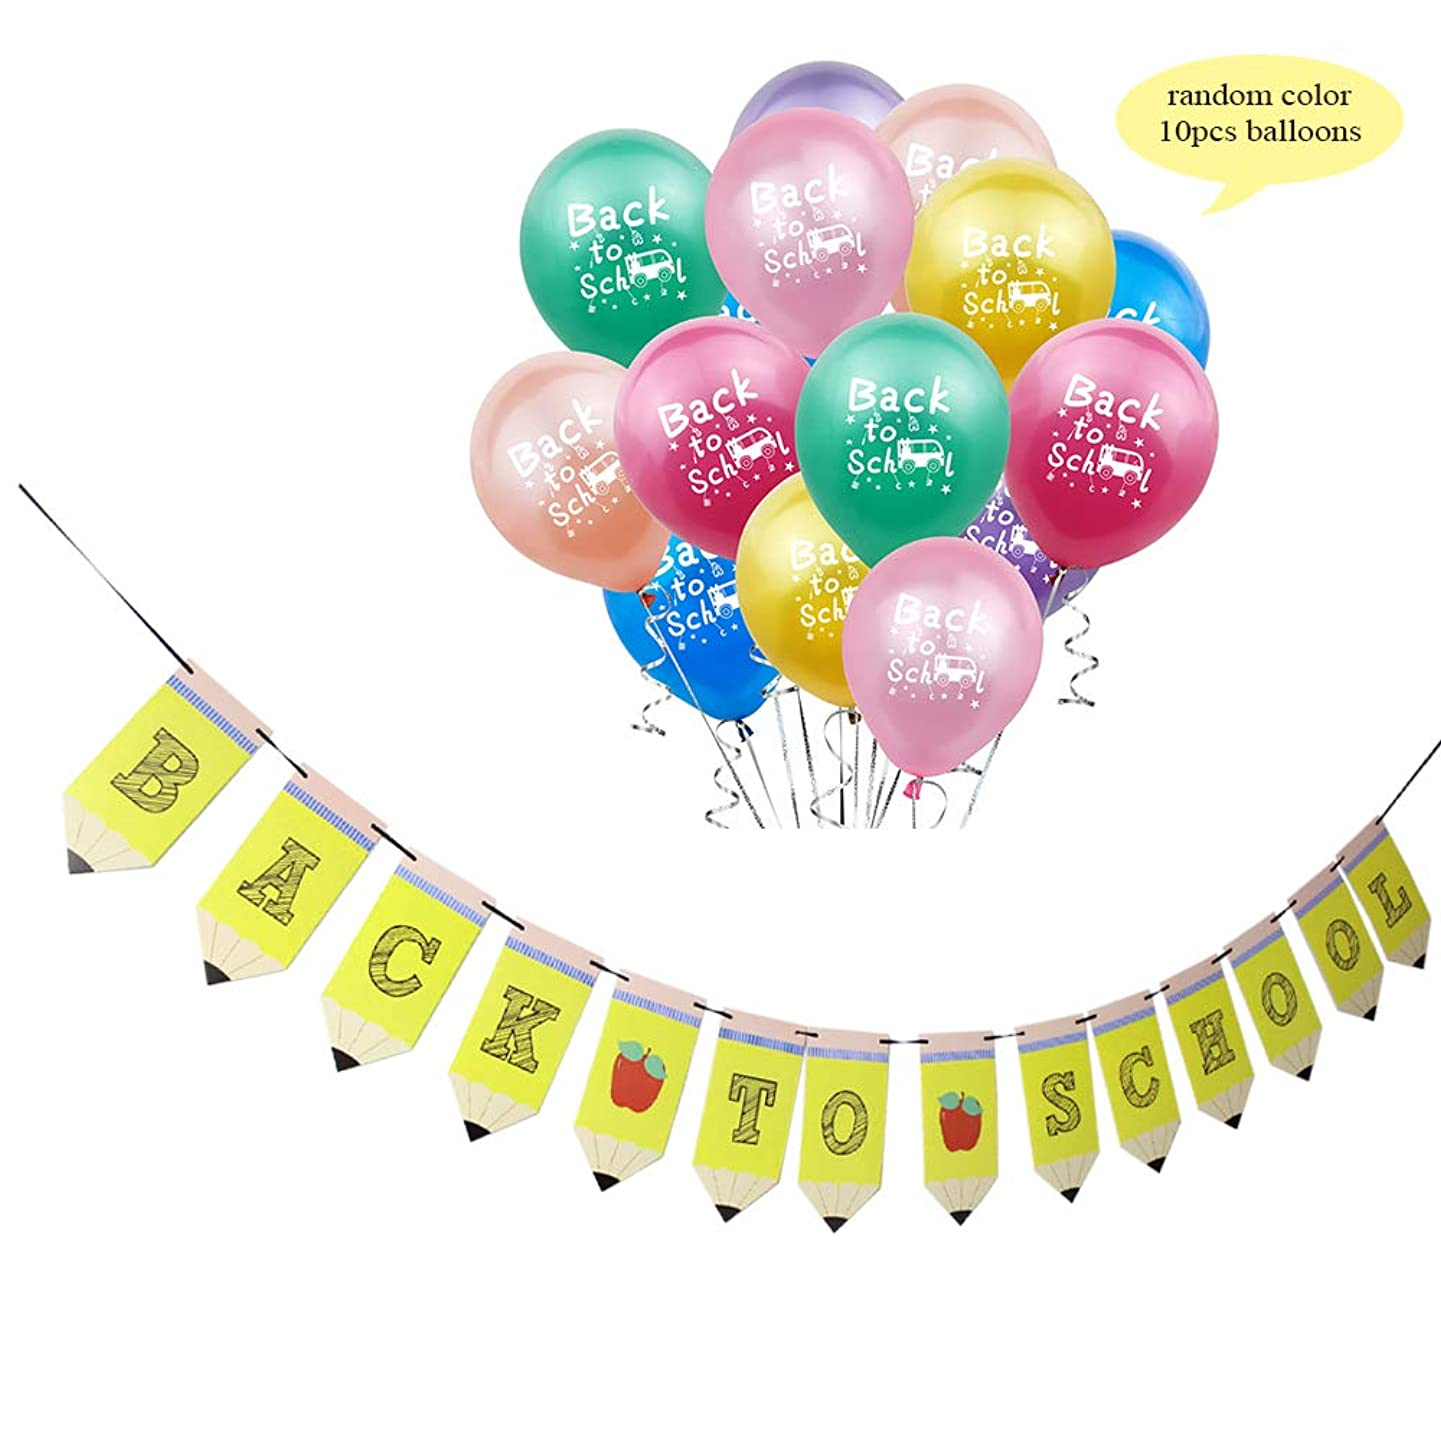 Pencil Back to School Banner Party Decorations with Colorful Bus Balloons for New Grade Welcome Class Celebration